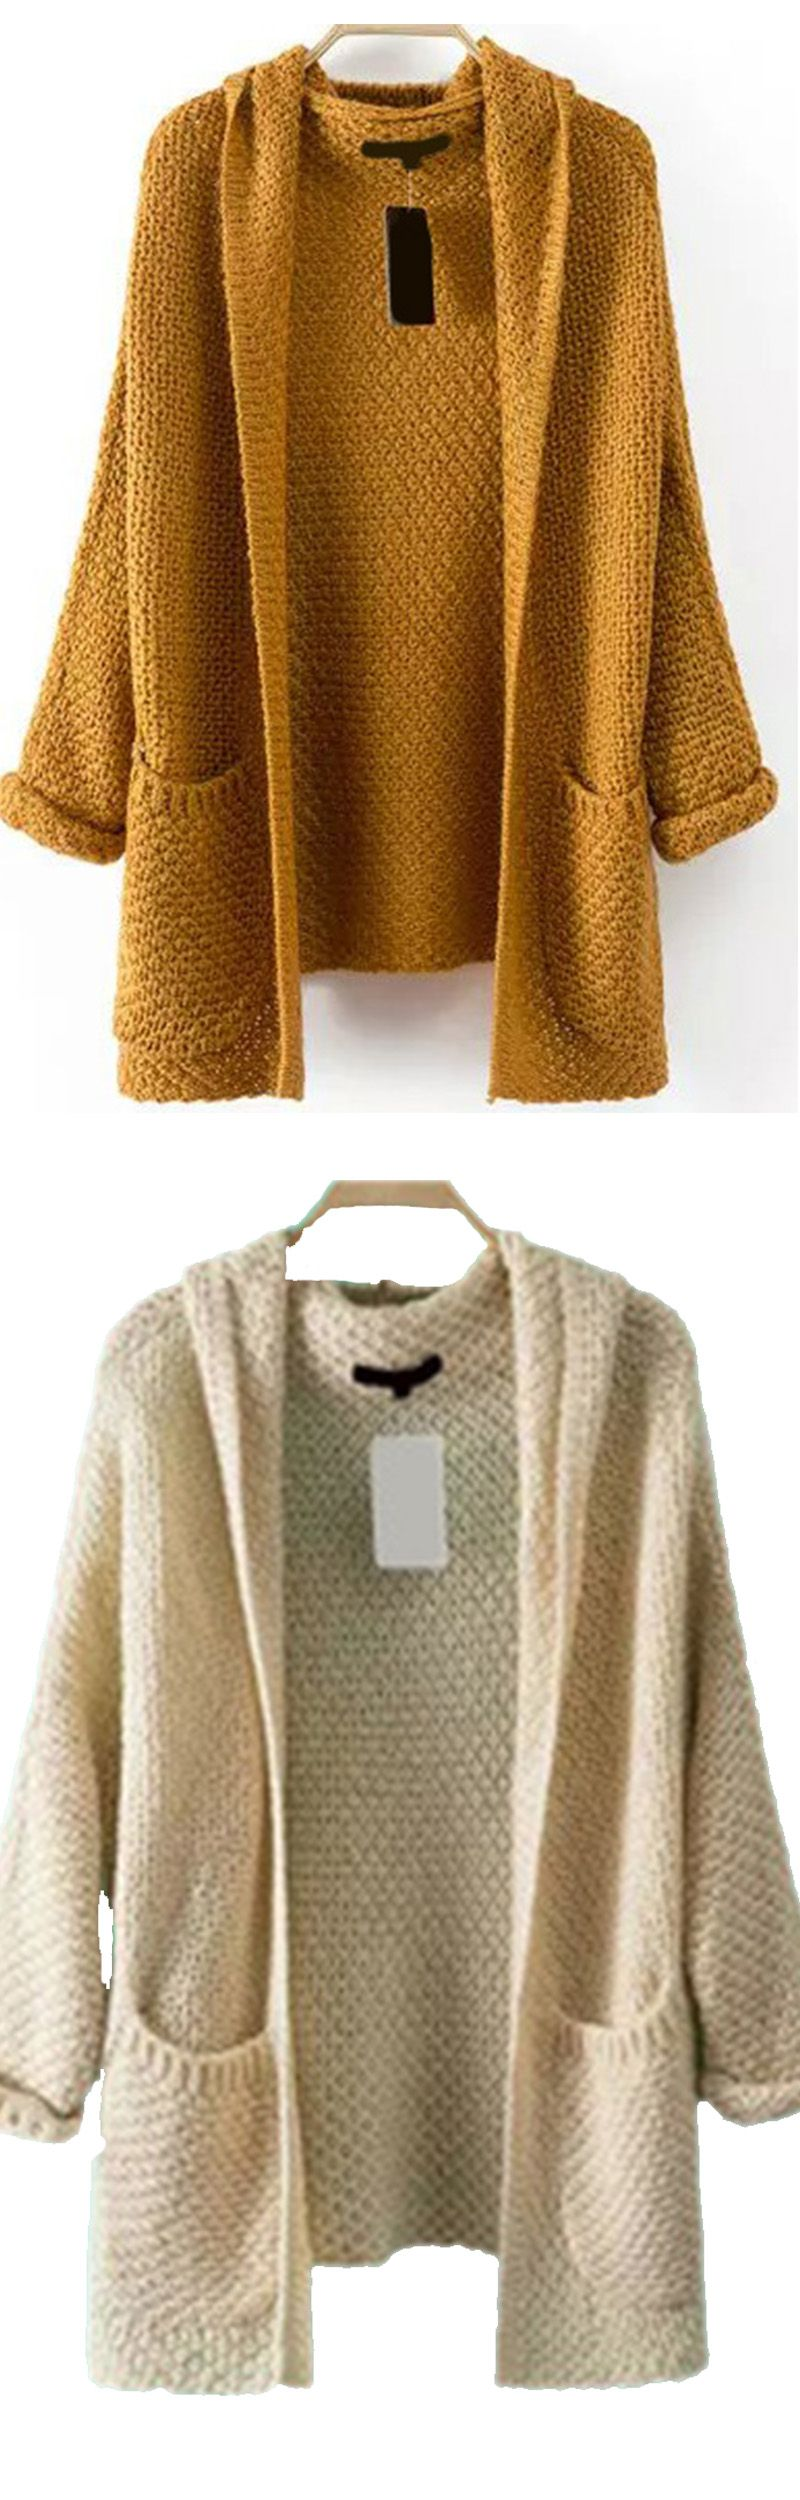 Loose chunky knit khaki pocket sweater cardigan at romwe.com ...